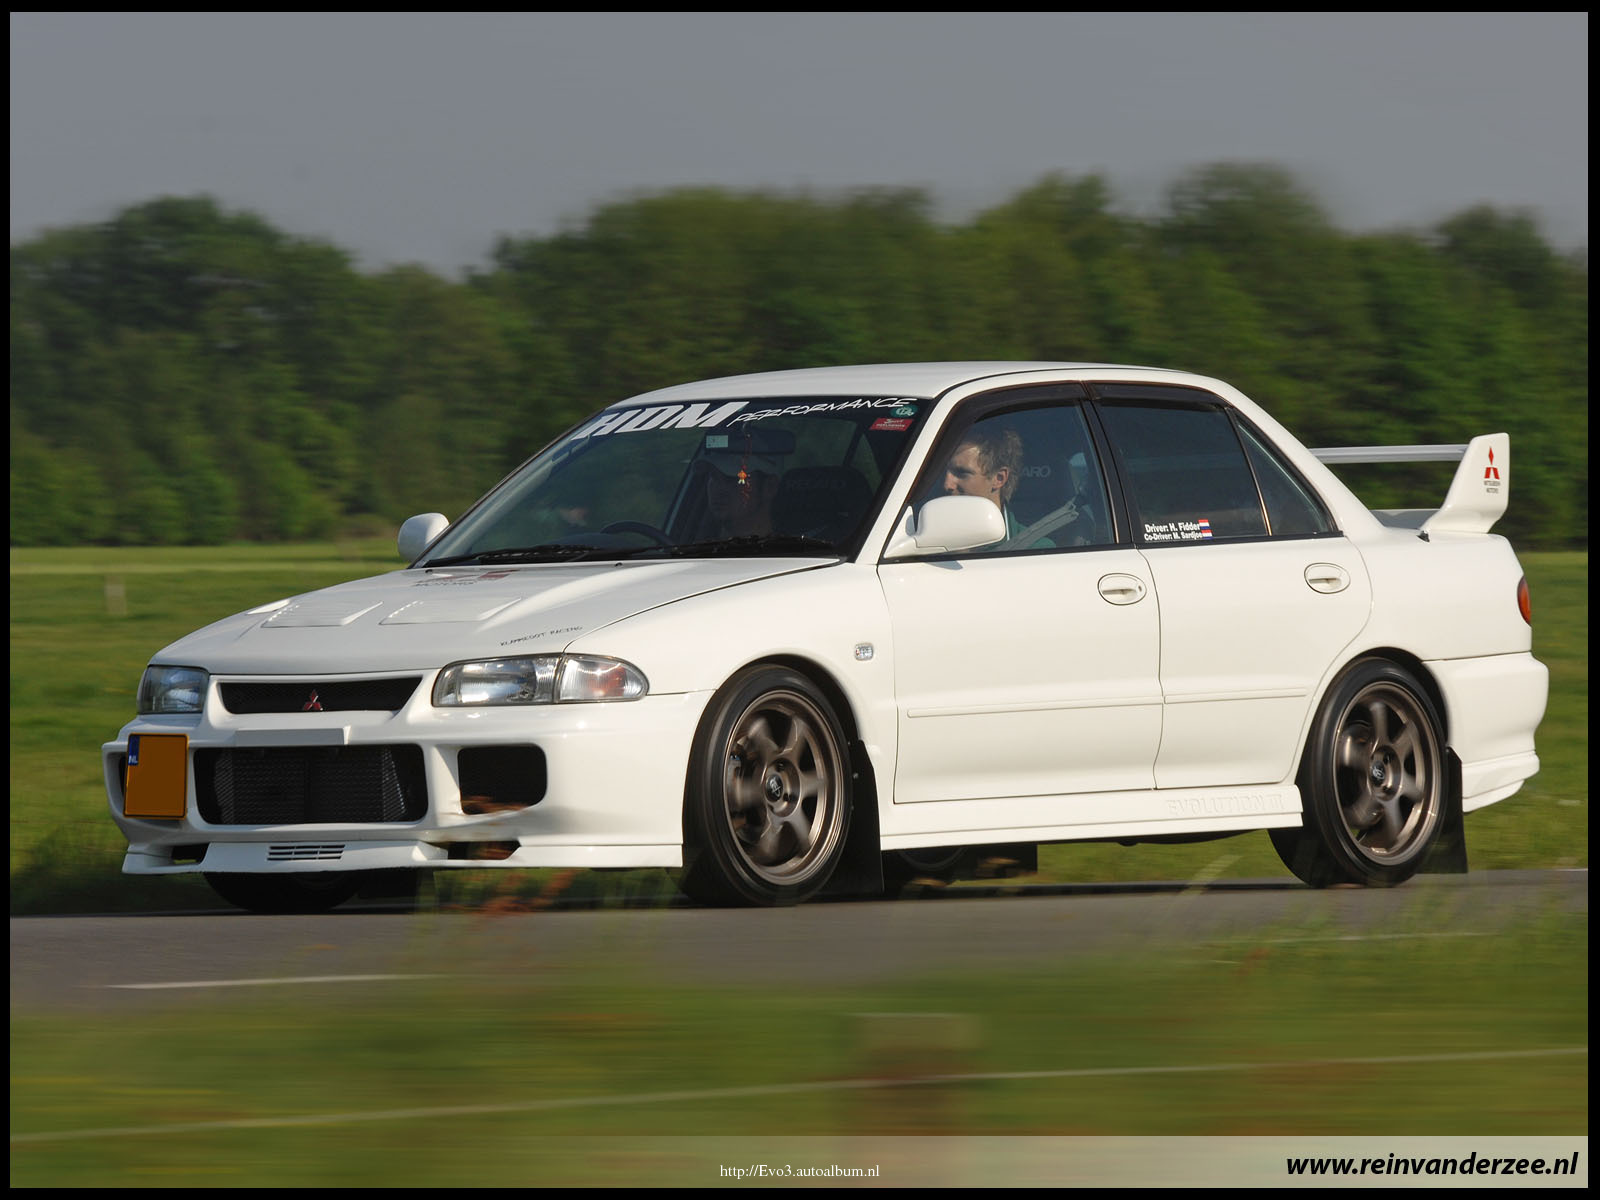 My Favorite Lancer Of All The Evo 3